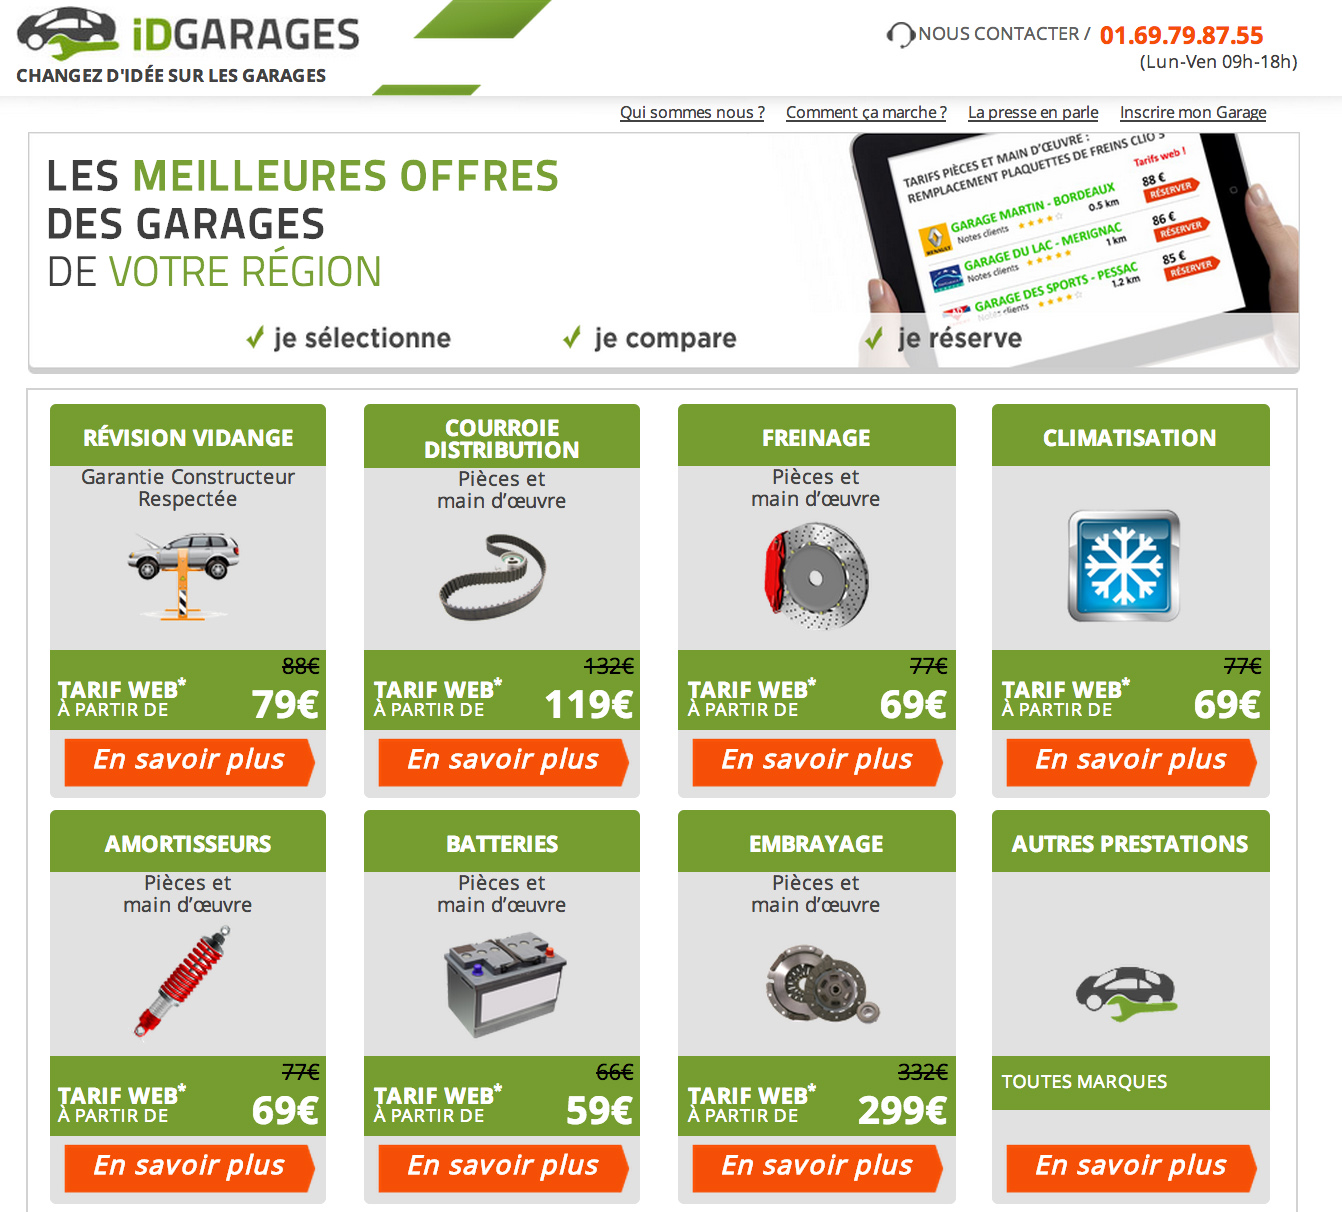 Idgarages le premier comparateur de garages for Comparateur assurance garage